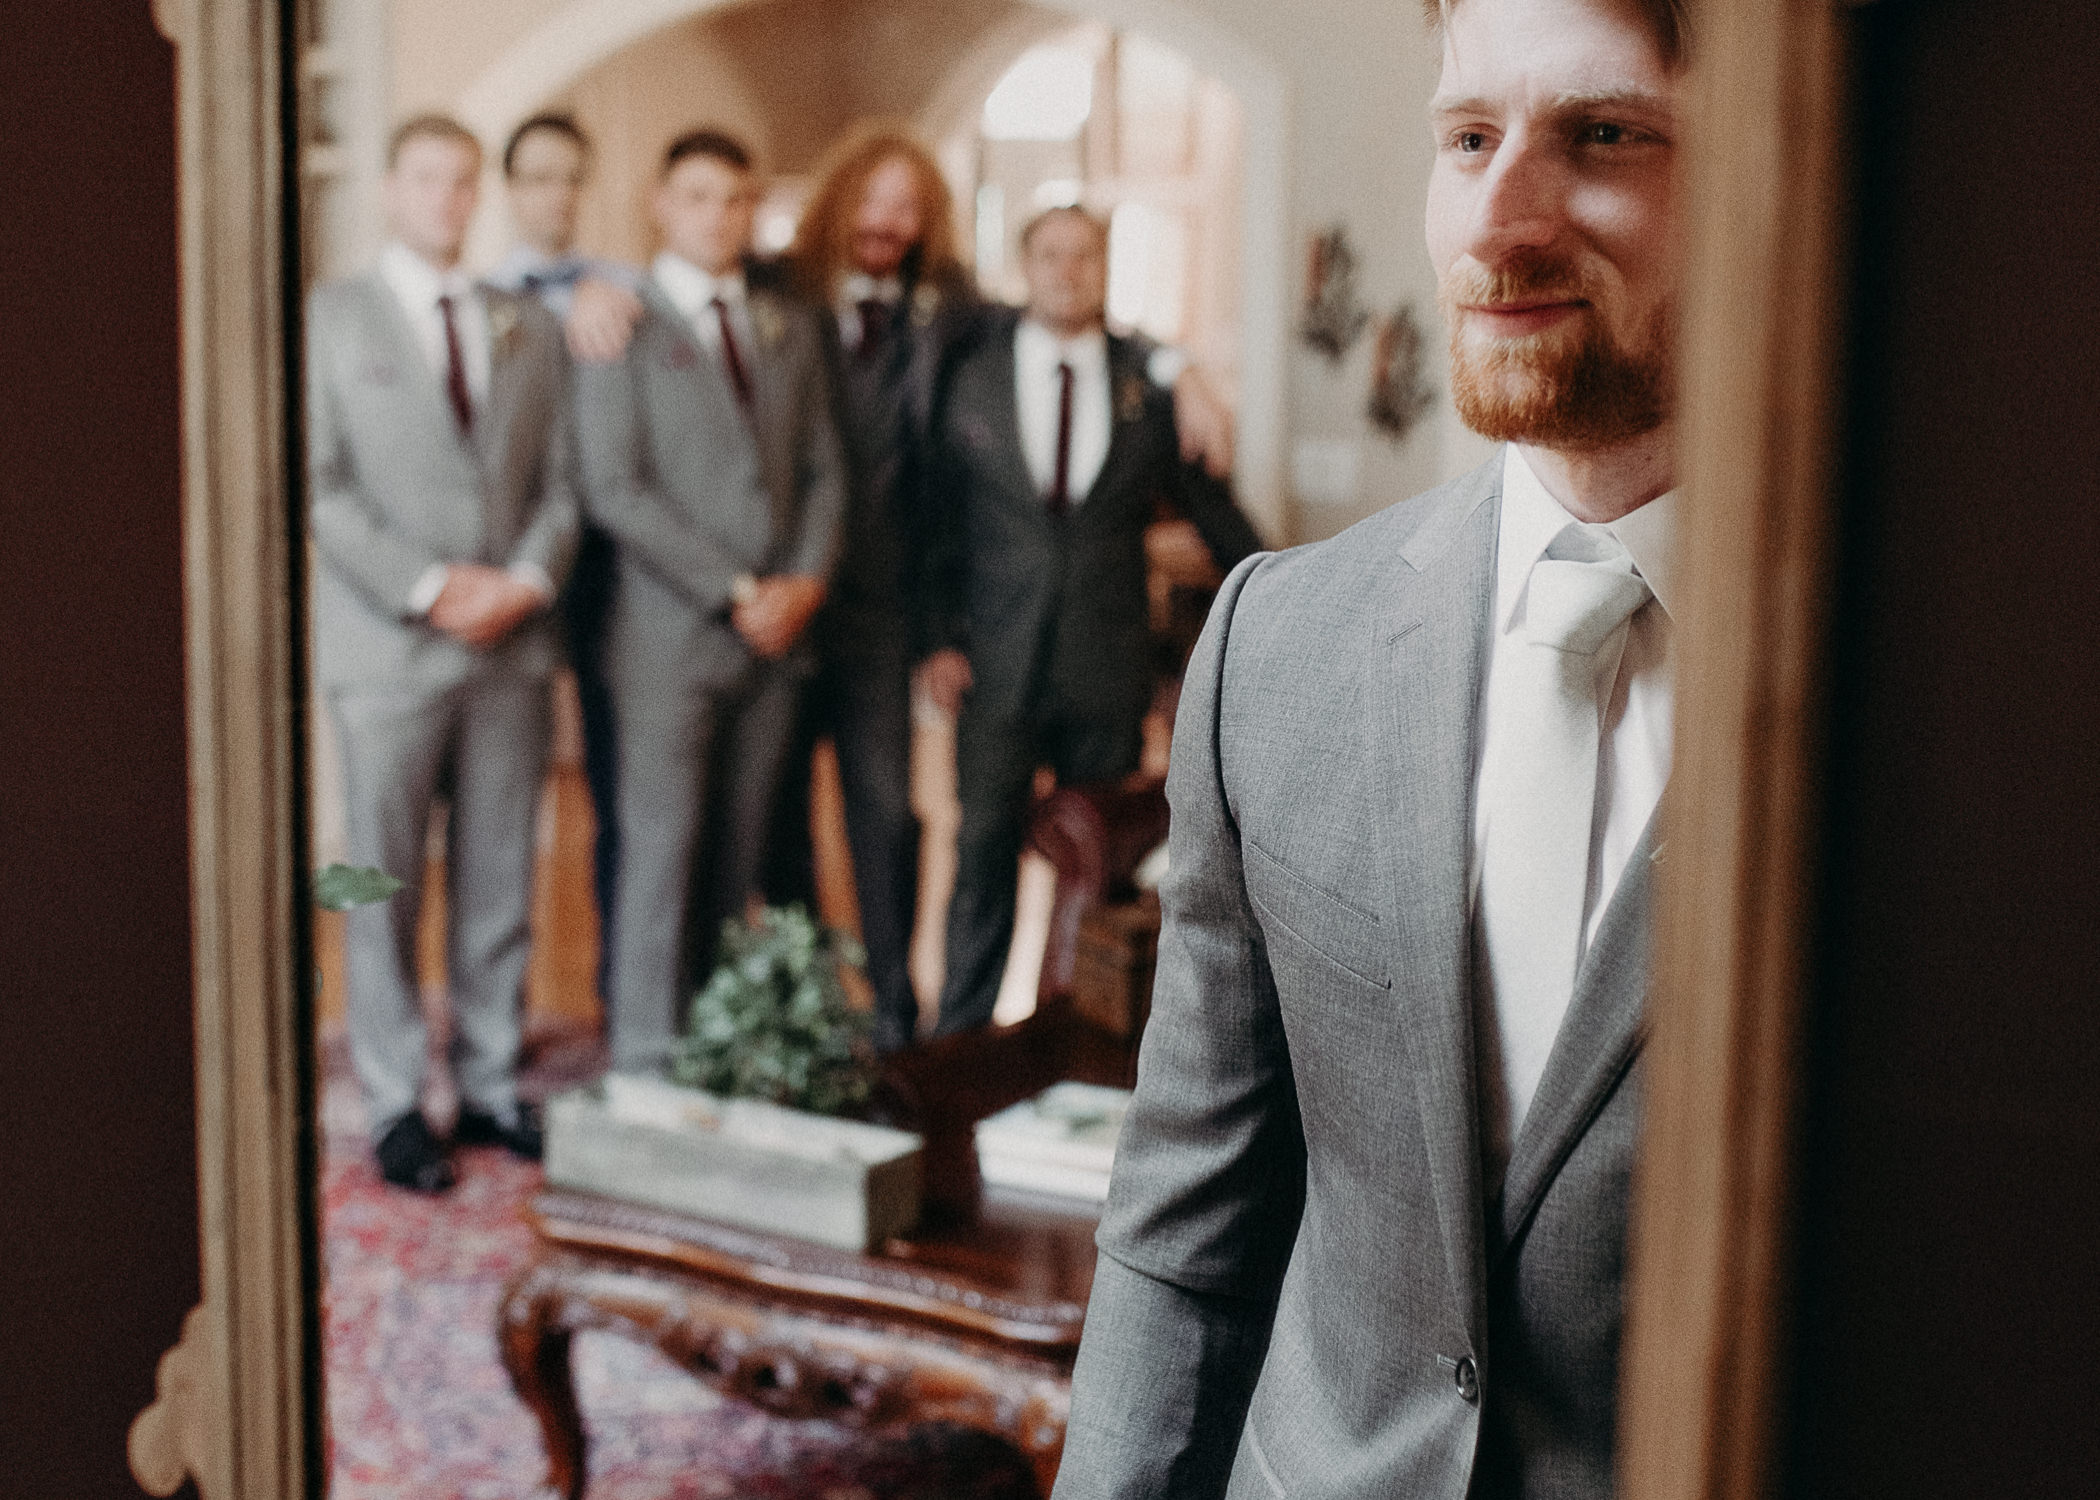 31 Groom getting ready pictures before ceremony- Weding day, Atlanta-Ga Photographer .jpg